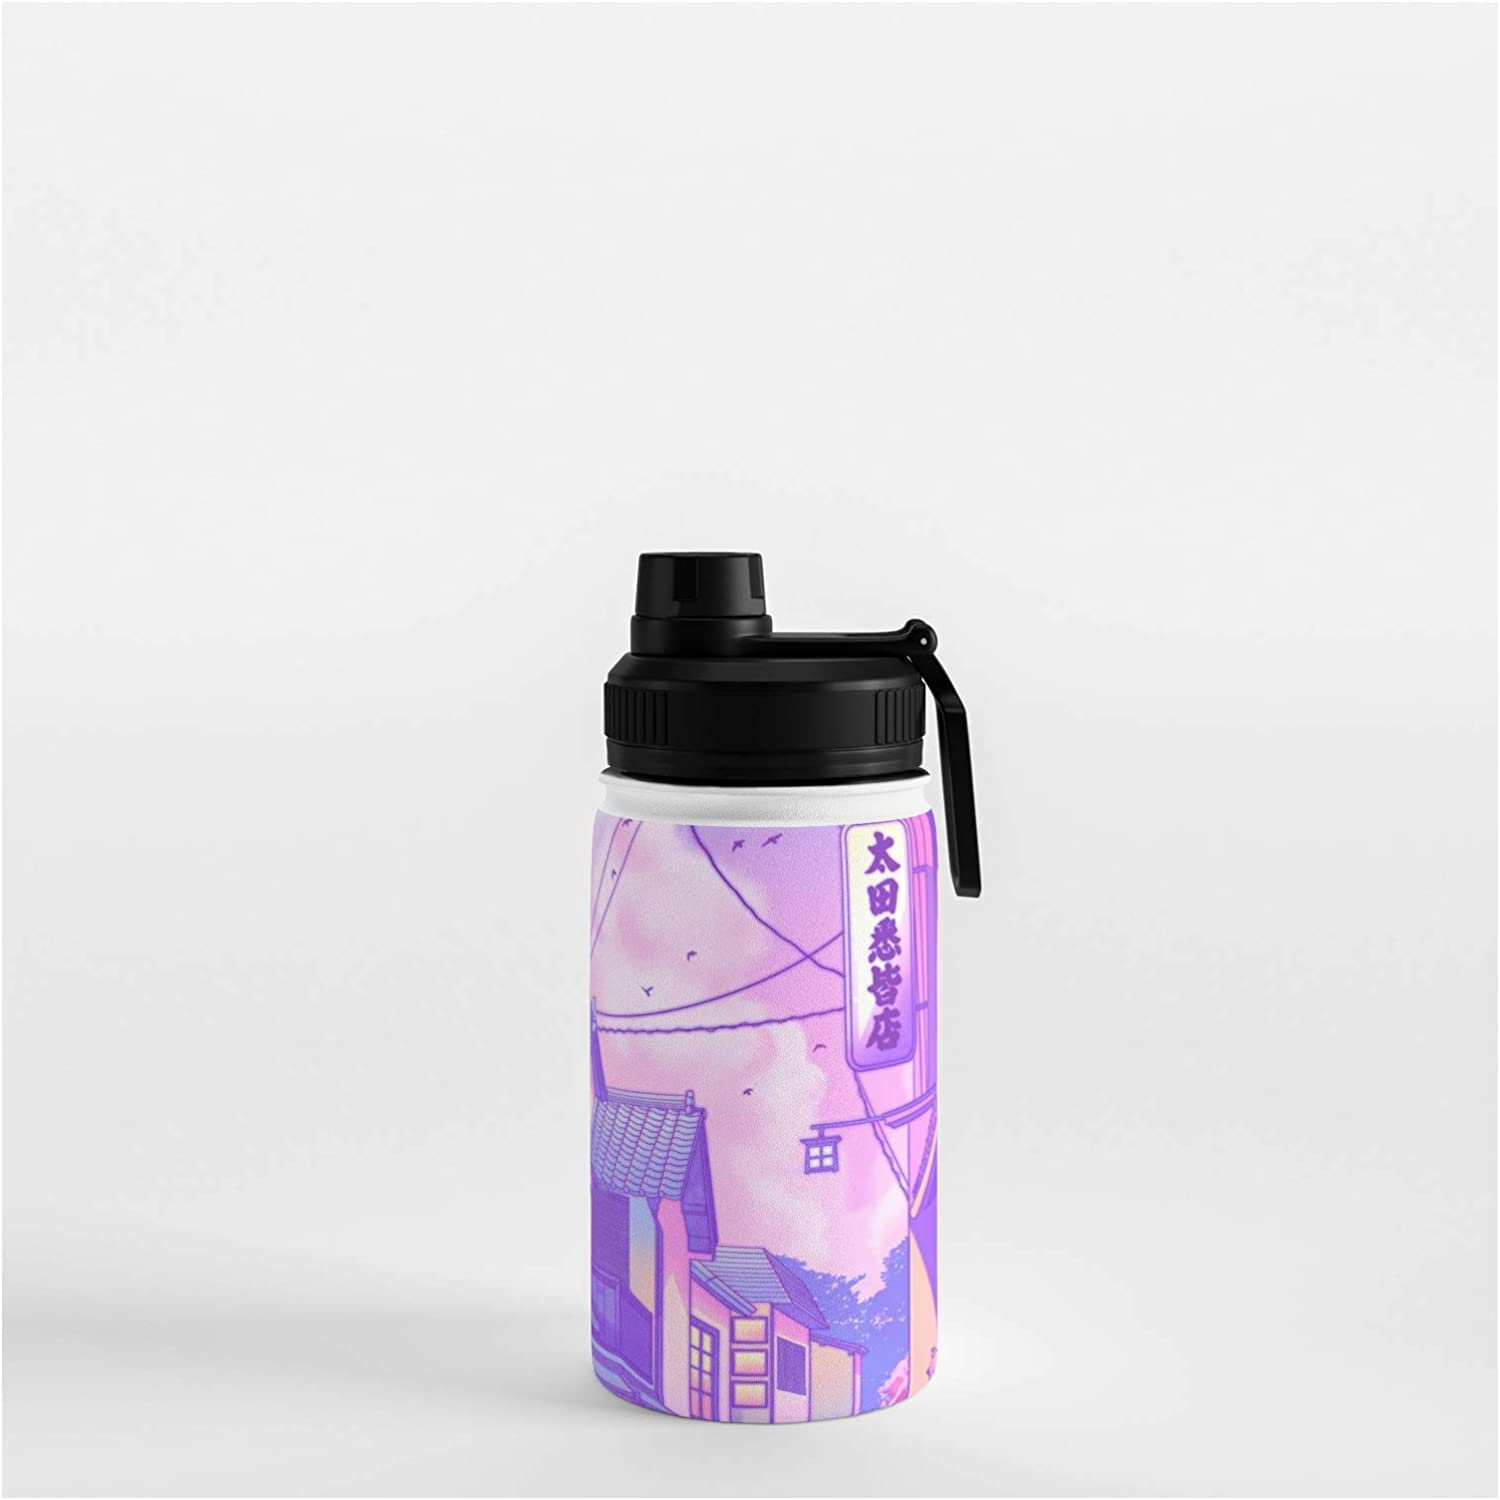 Society6 City Pop Kyoto by Detroit Mall Surudenise on oz - 35 12 Shipping included Bottle Water